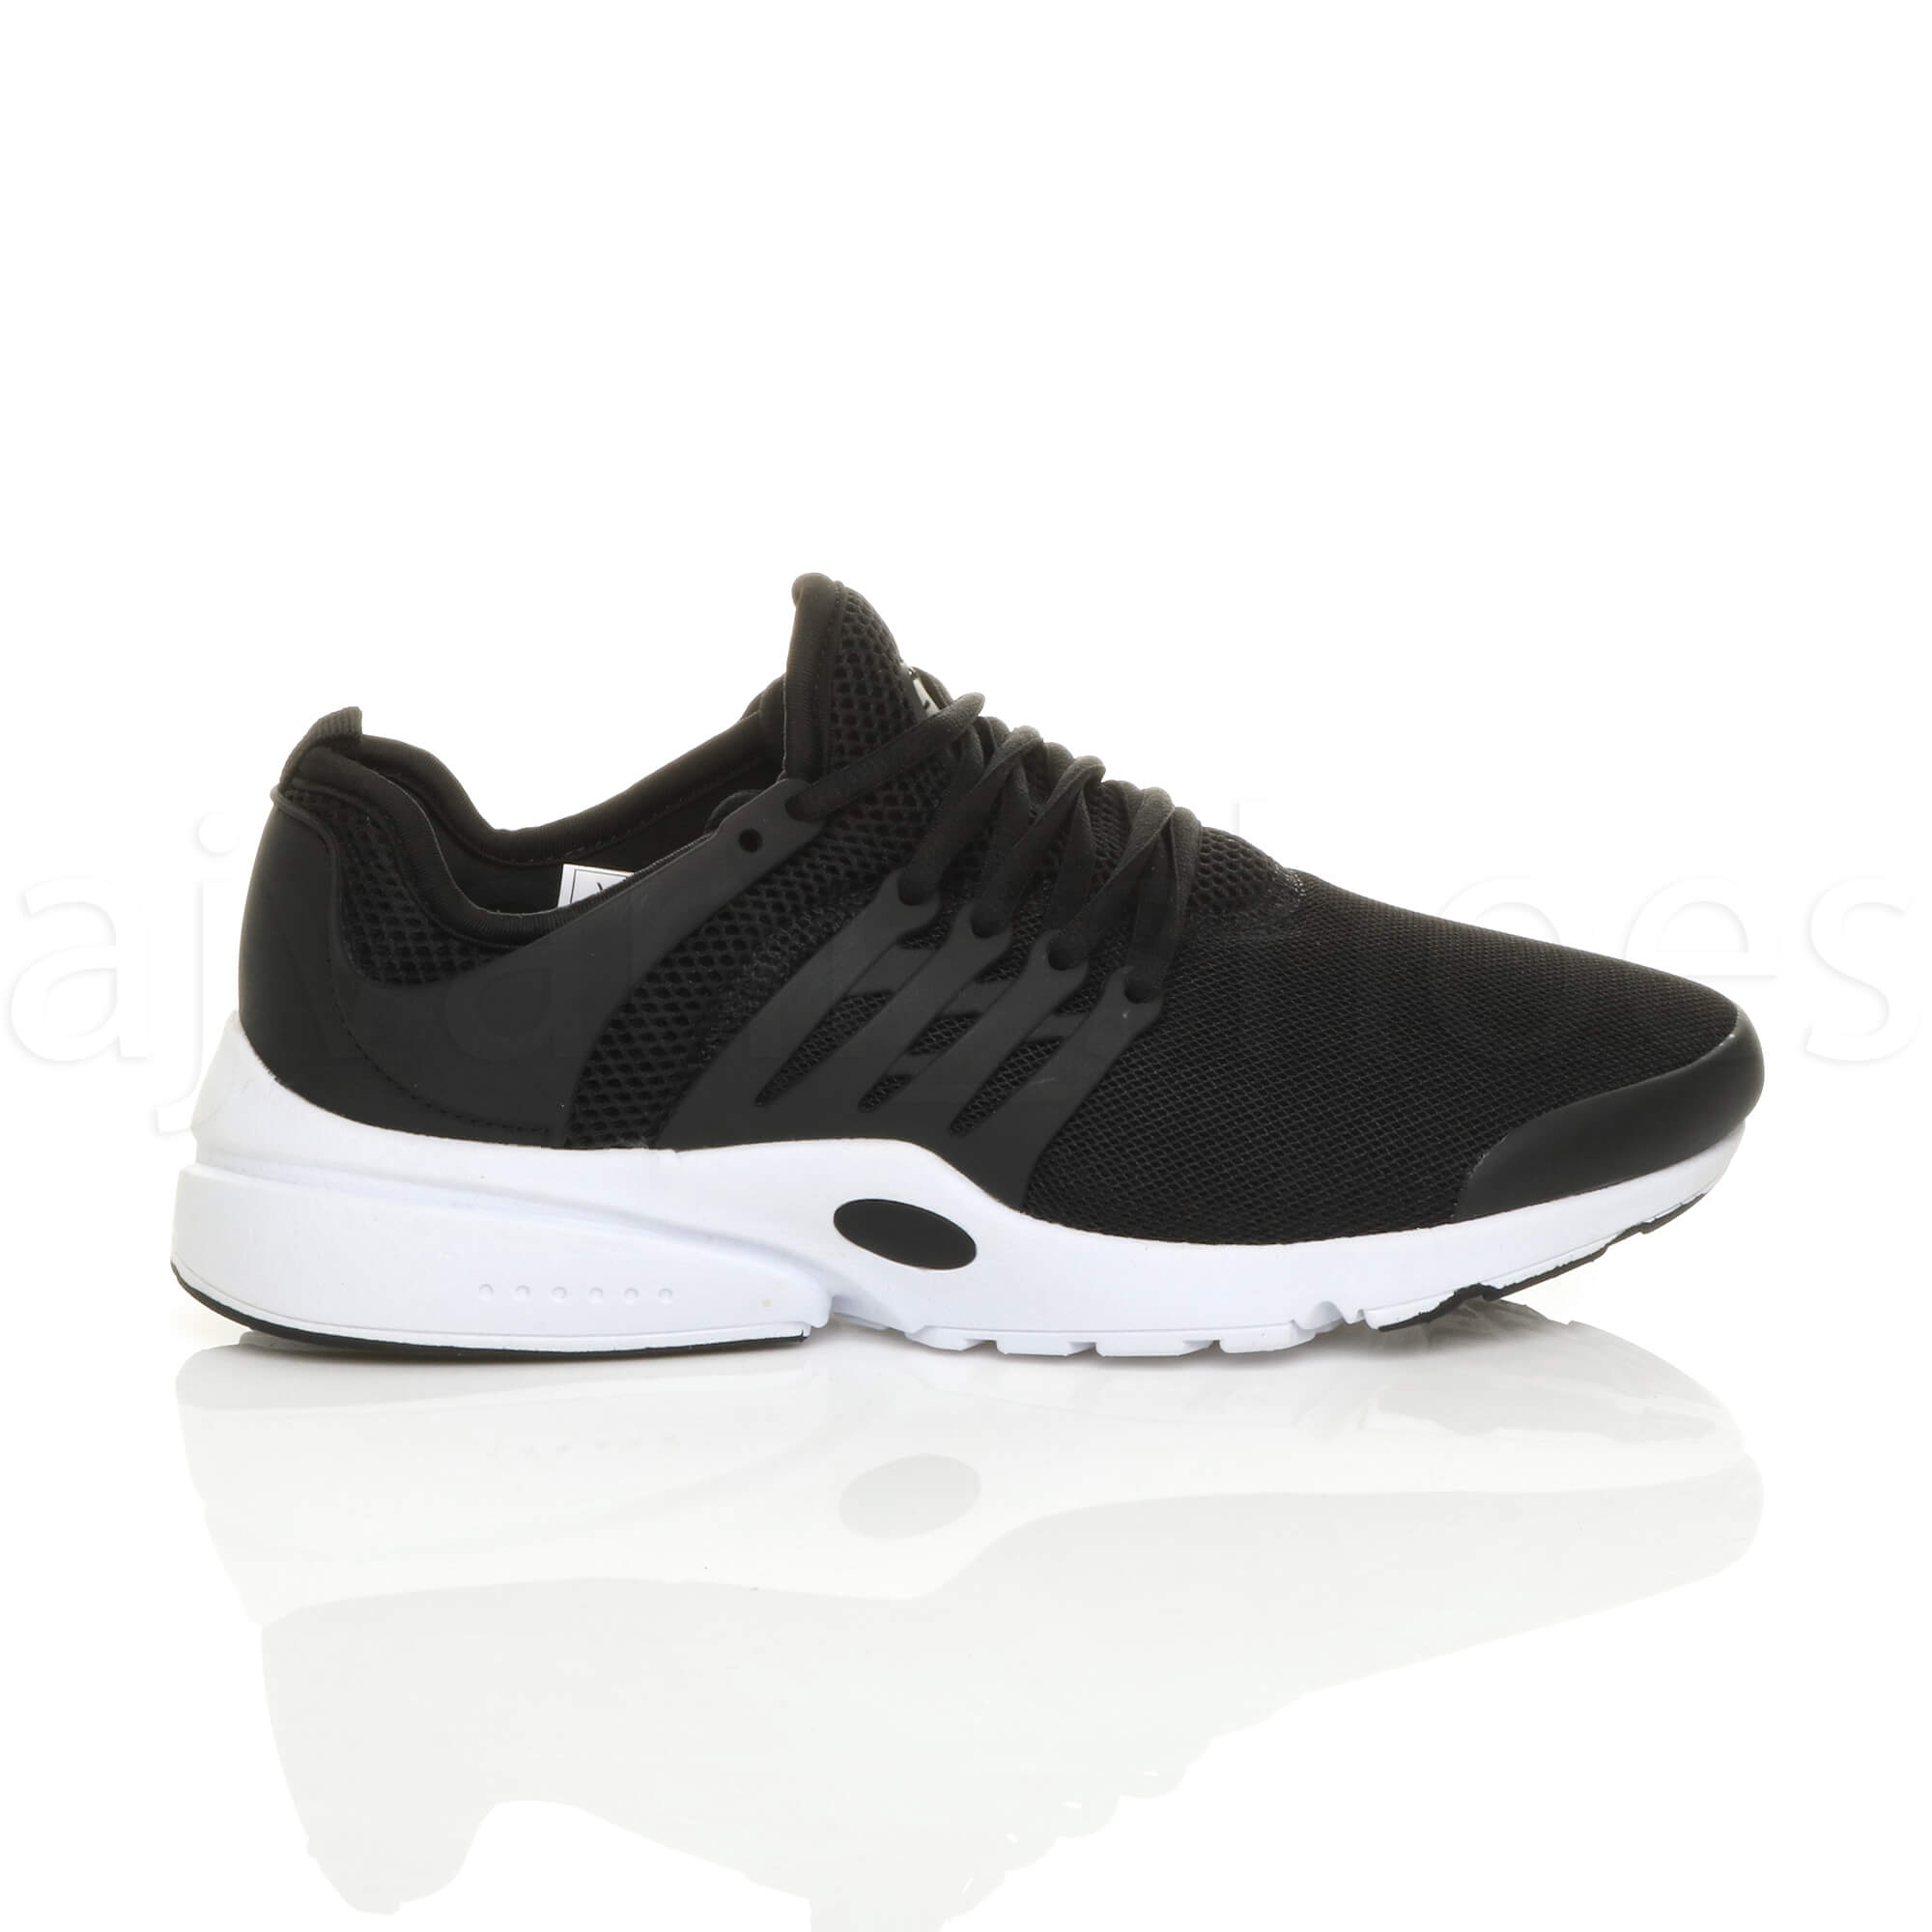 MENS-LACE-UP-SPORTS-GYM-FITNESS-RUNNING-FLEXIBLE-TRAINERS-CASUAL-SNEAKERS-SIZE thumbnail 11